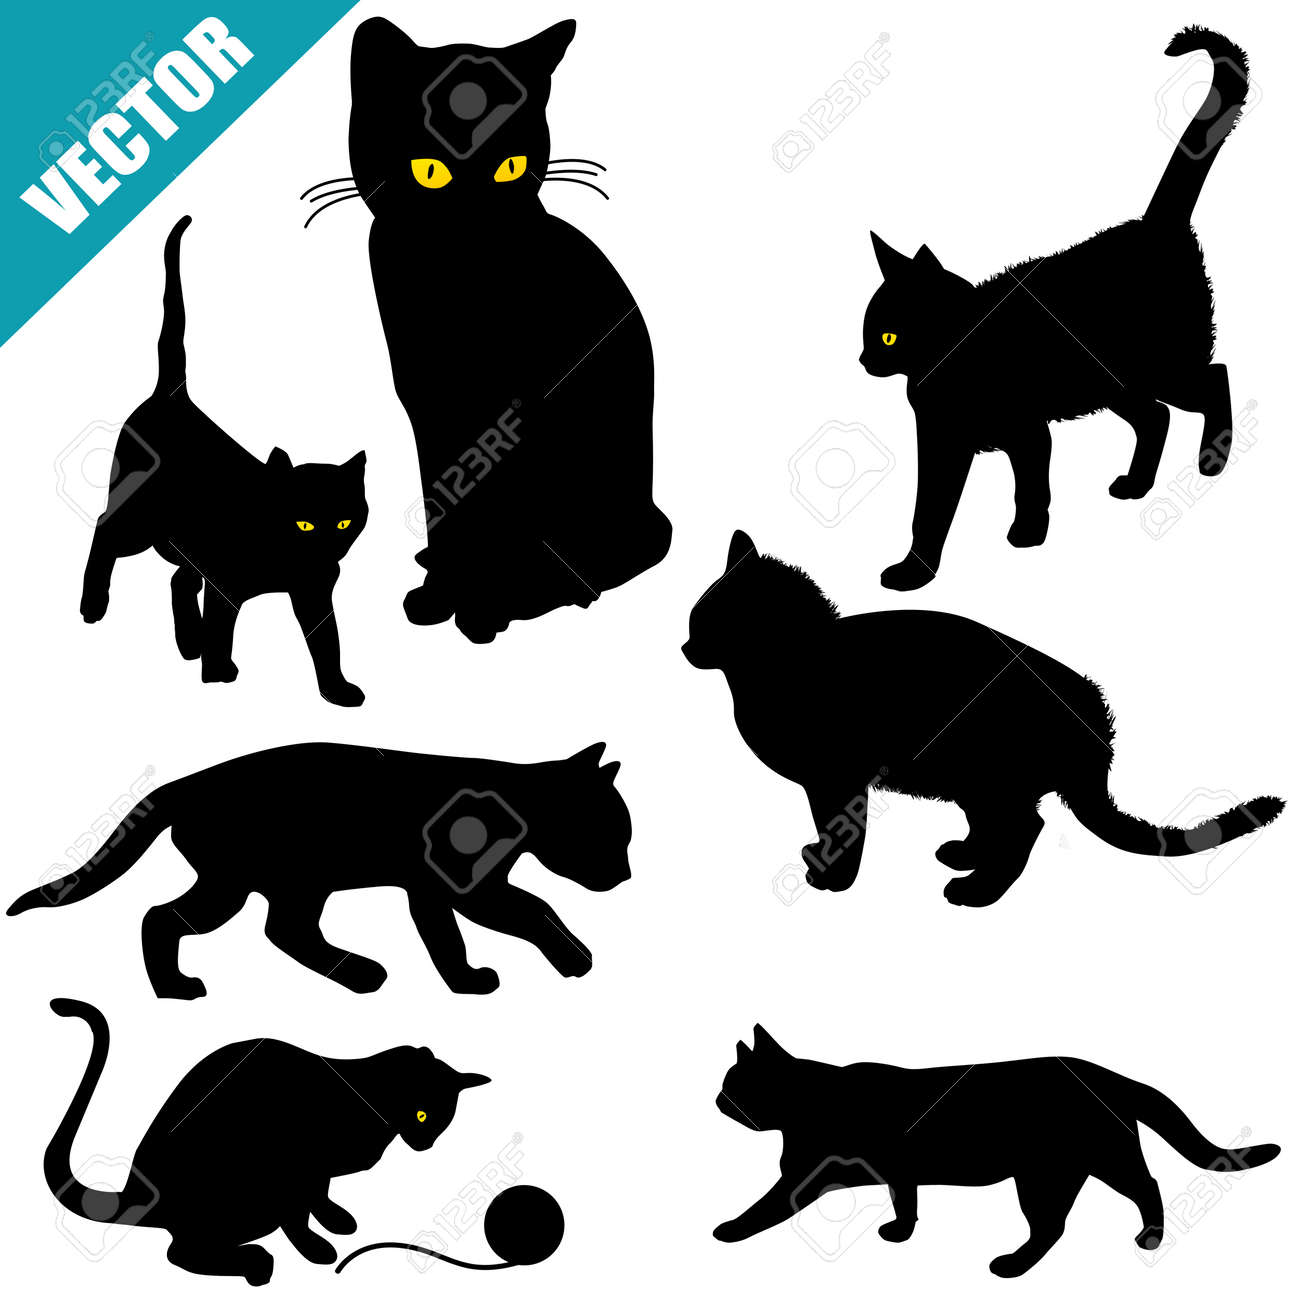 Silhouettes of cats on white background, vector illustration Foto de archivo - 25528881